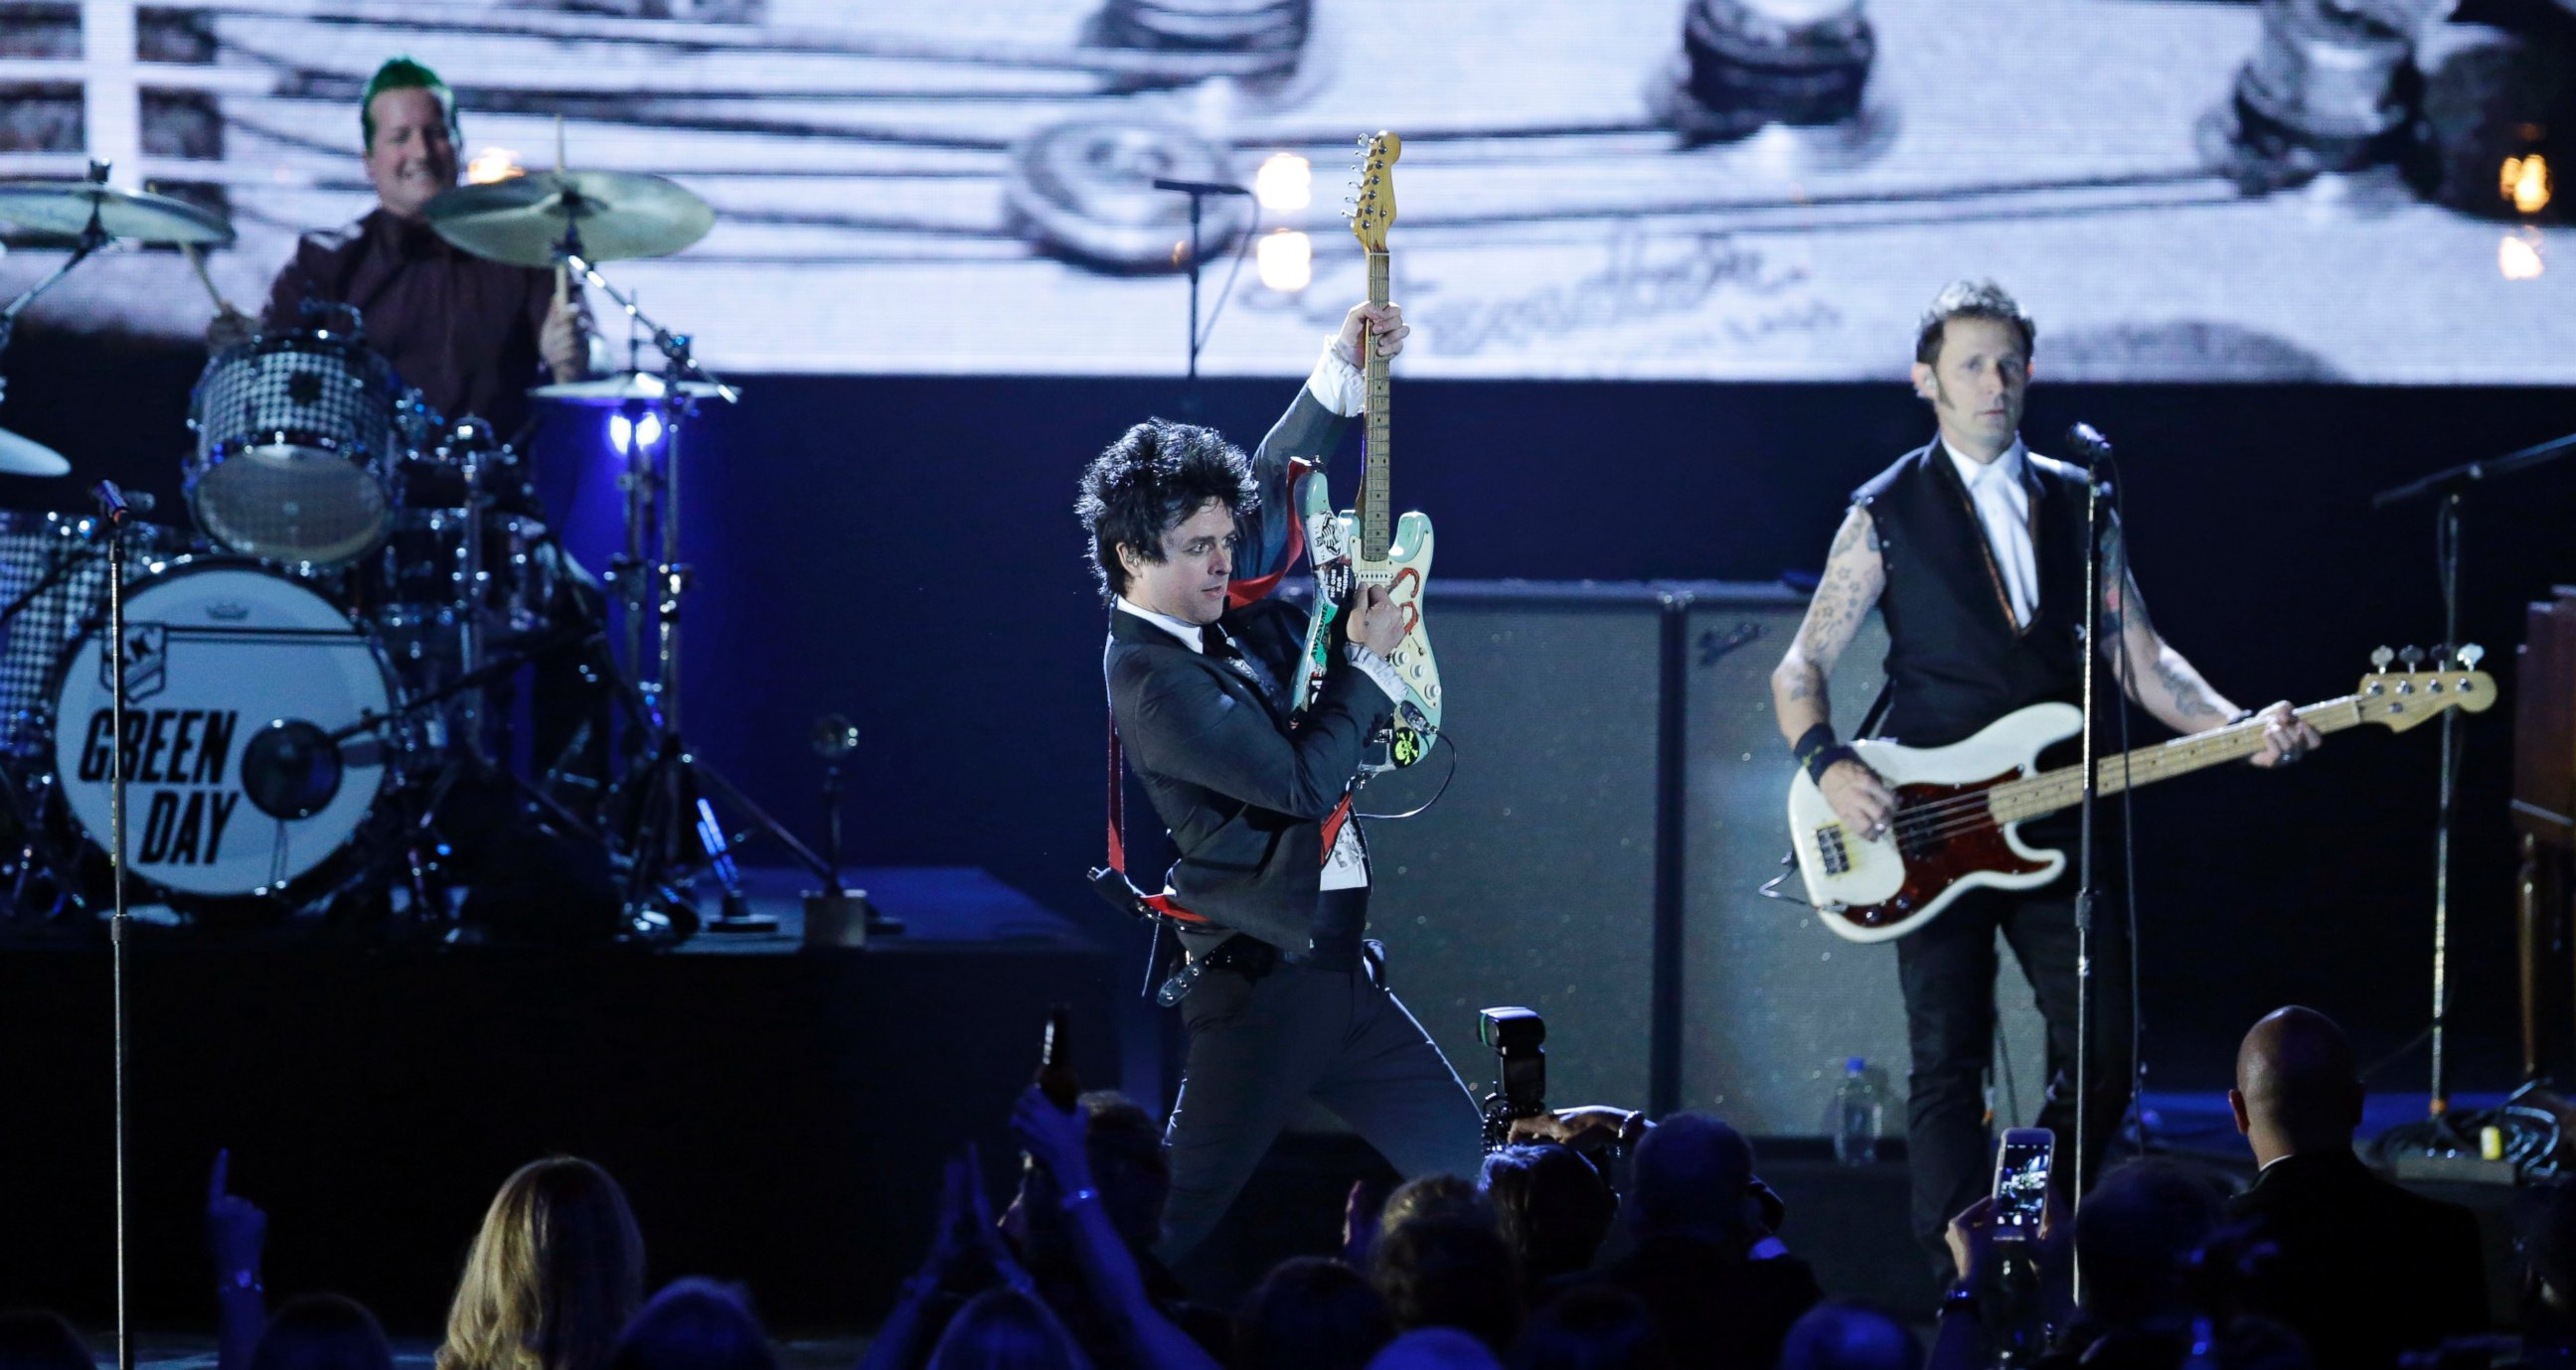 billie joe armstrong wallpapers images photos pictures backgrounds